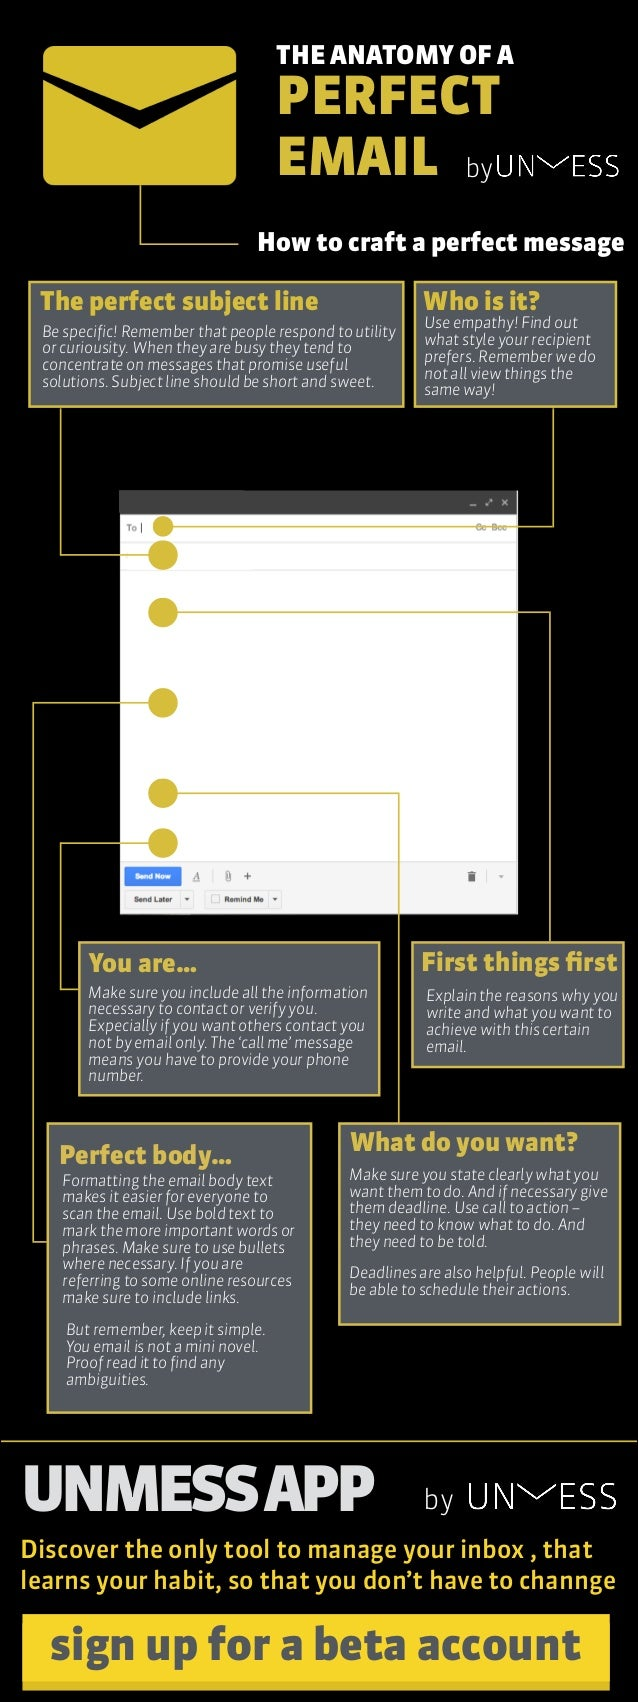 THE ANATOMY OF A PERFECT EMAIL How to craft a perfect message by UNMESSAPP by Discover the only tool to manage your inbox ...